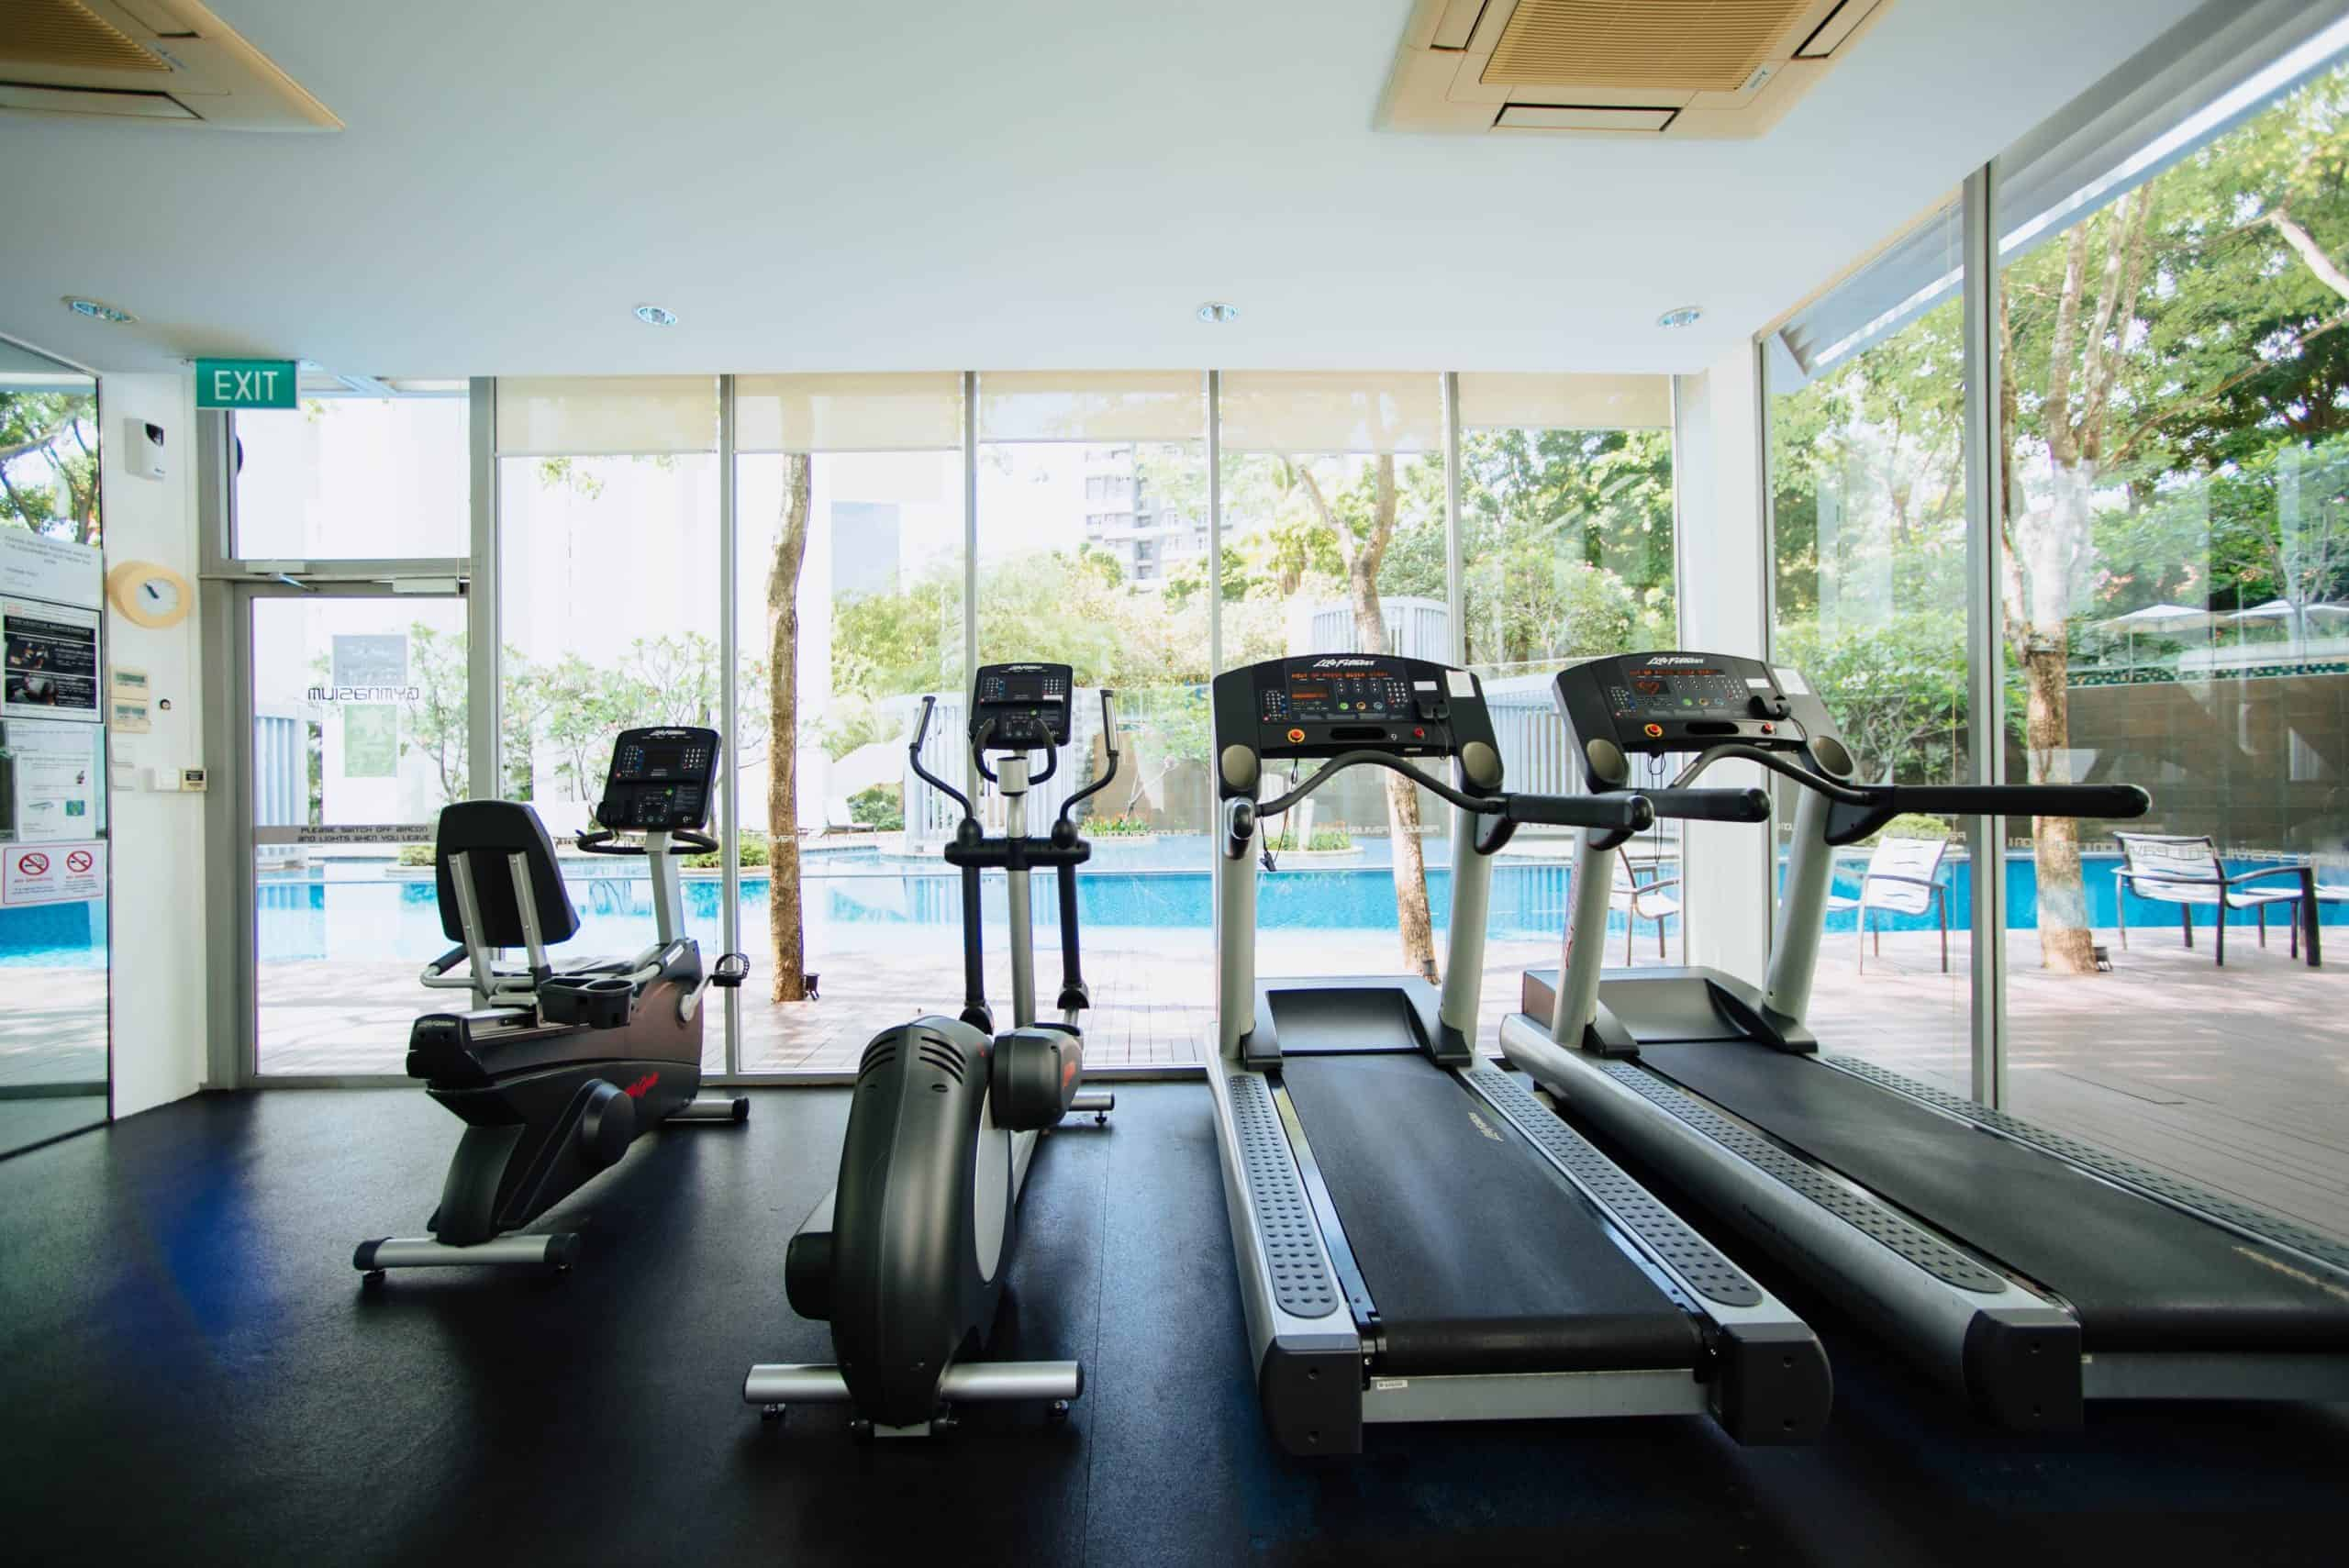 Choosing The Right Treadmill Workout Program